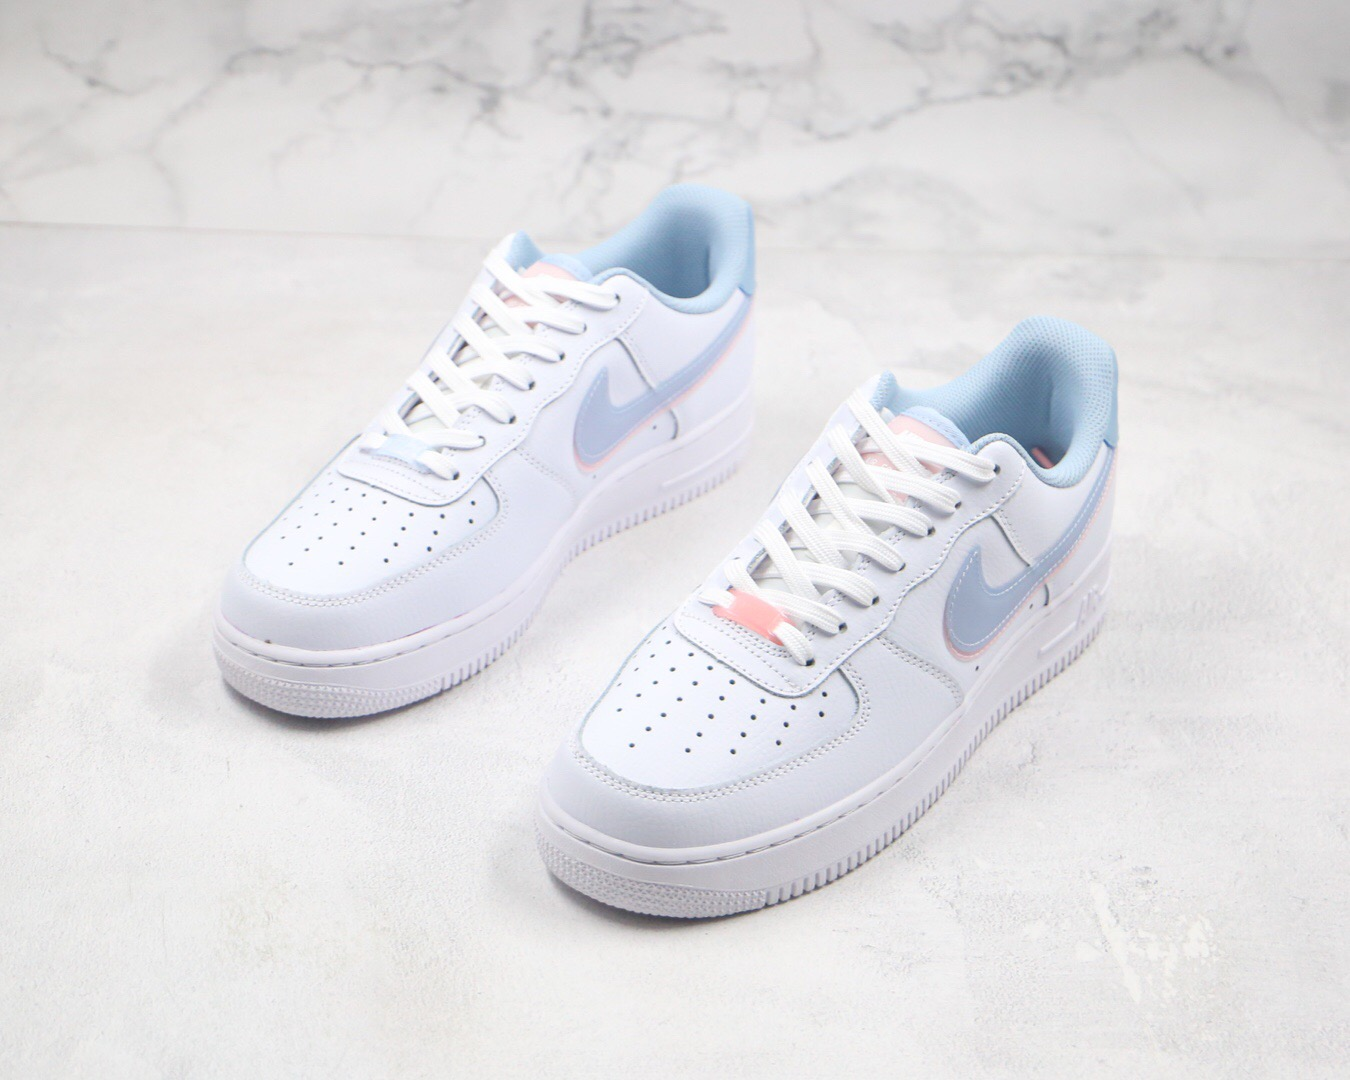 [Date19] Nike Air Force 1 Gs 藍粉 果凍 雙勾 藍 粉 水藍 透明 CW1574-100